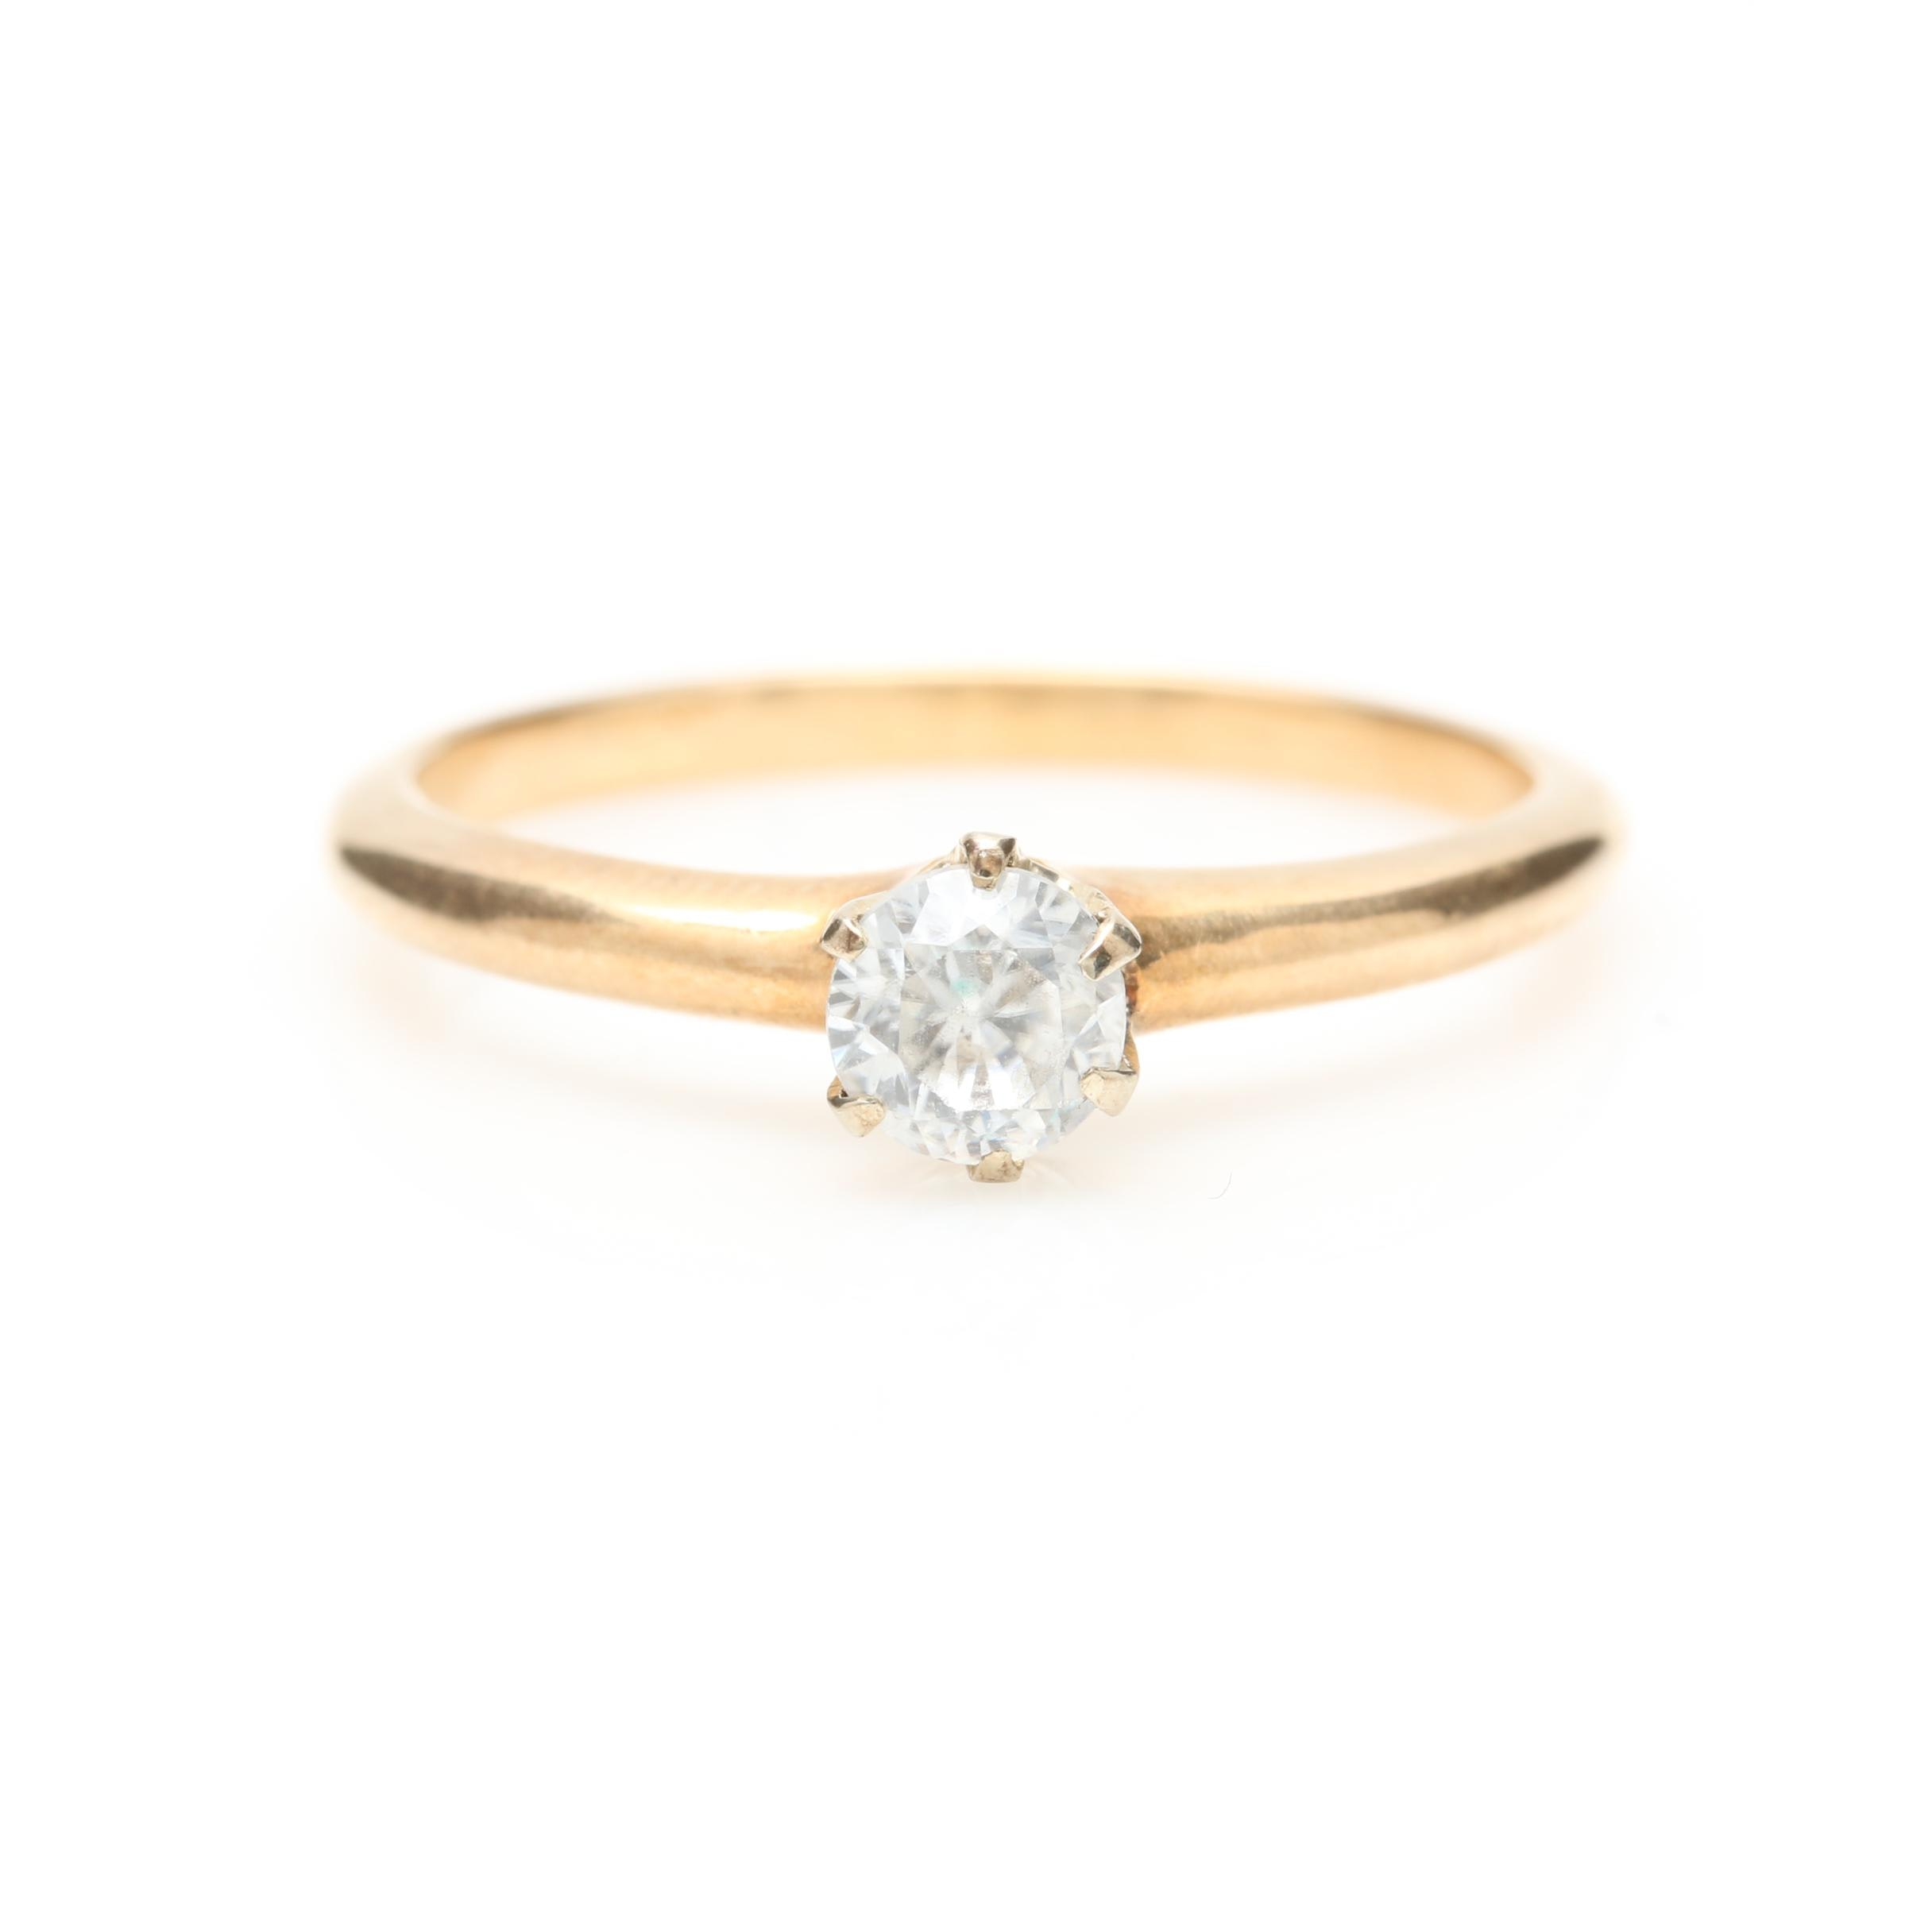 14K Yellow Gold Zircon Solitaire Ring